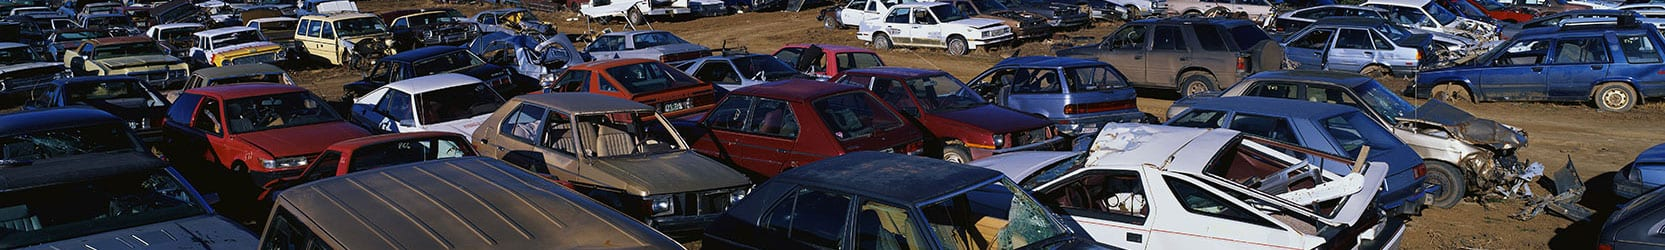 salvage parts for sale in caseyville il